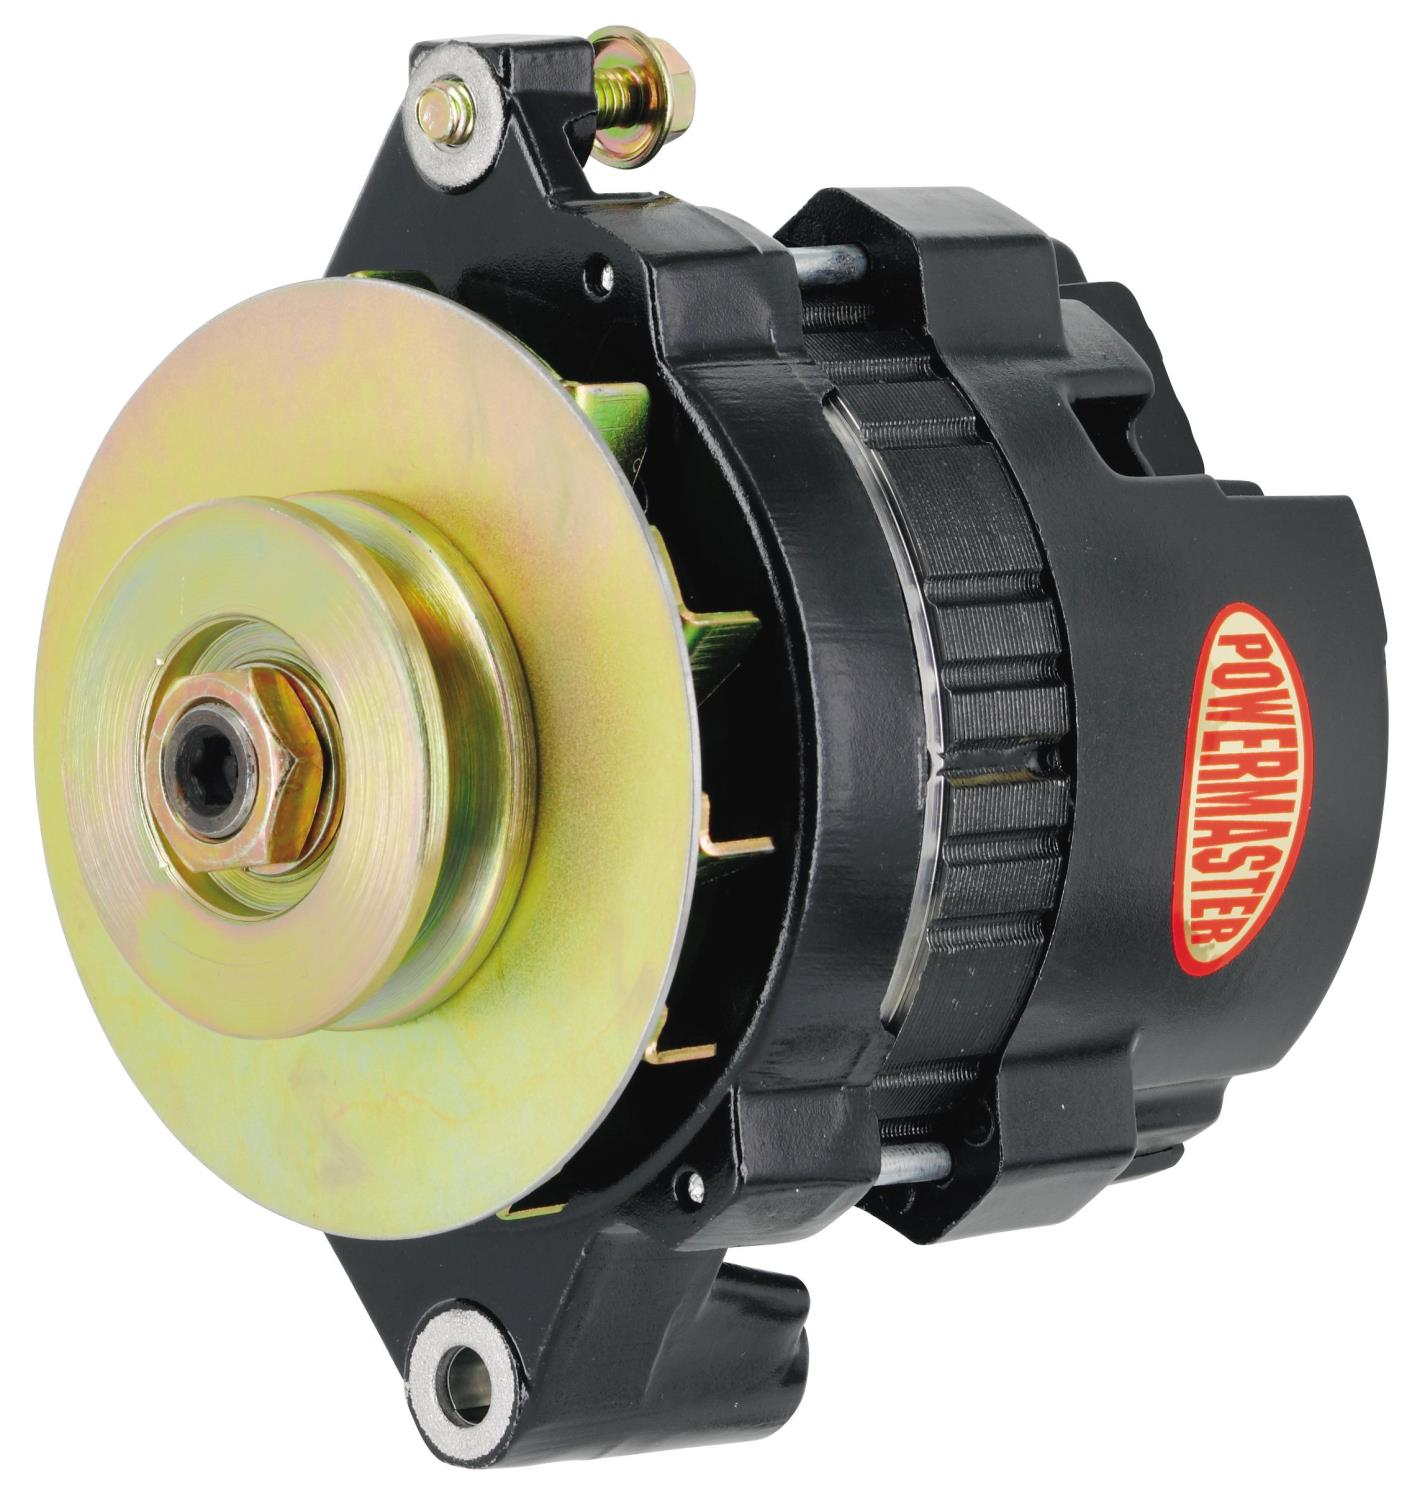 Powermaster 8468 - GM 5x5 Compact Race Alternators